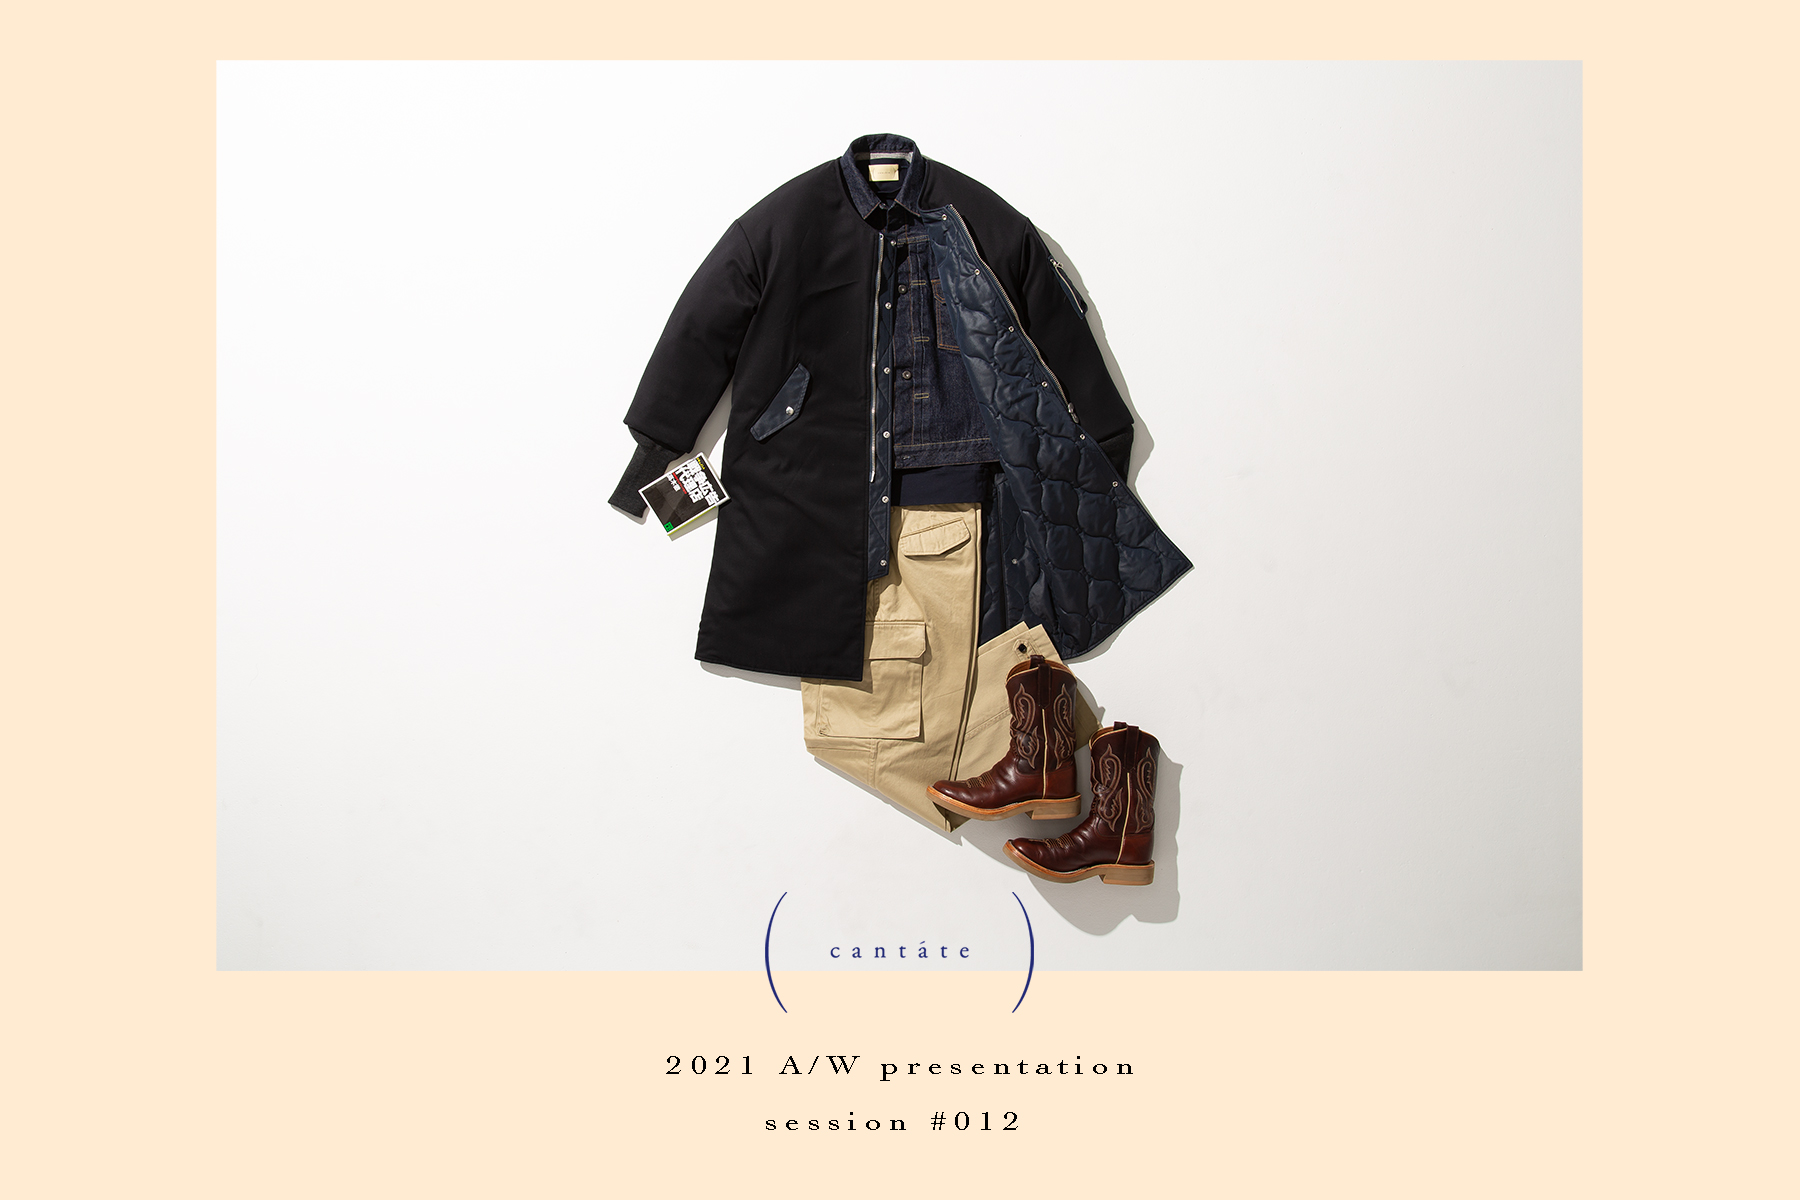 cantate 21SS EXHIBITION & 21AW PREVIEW